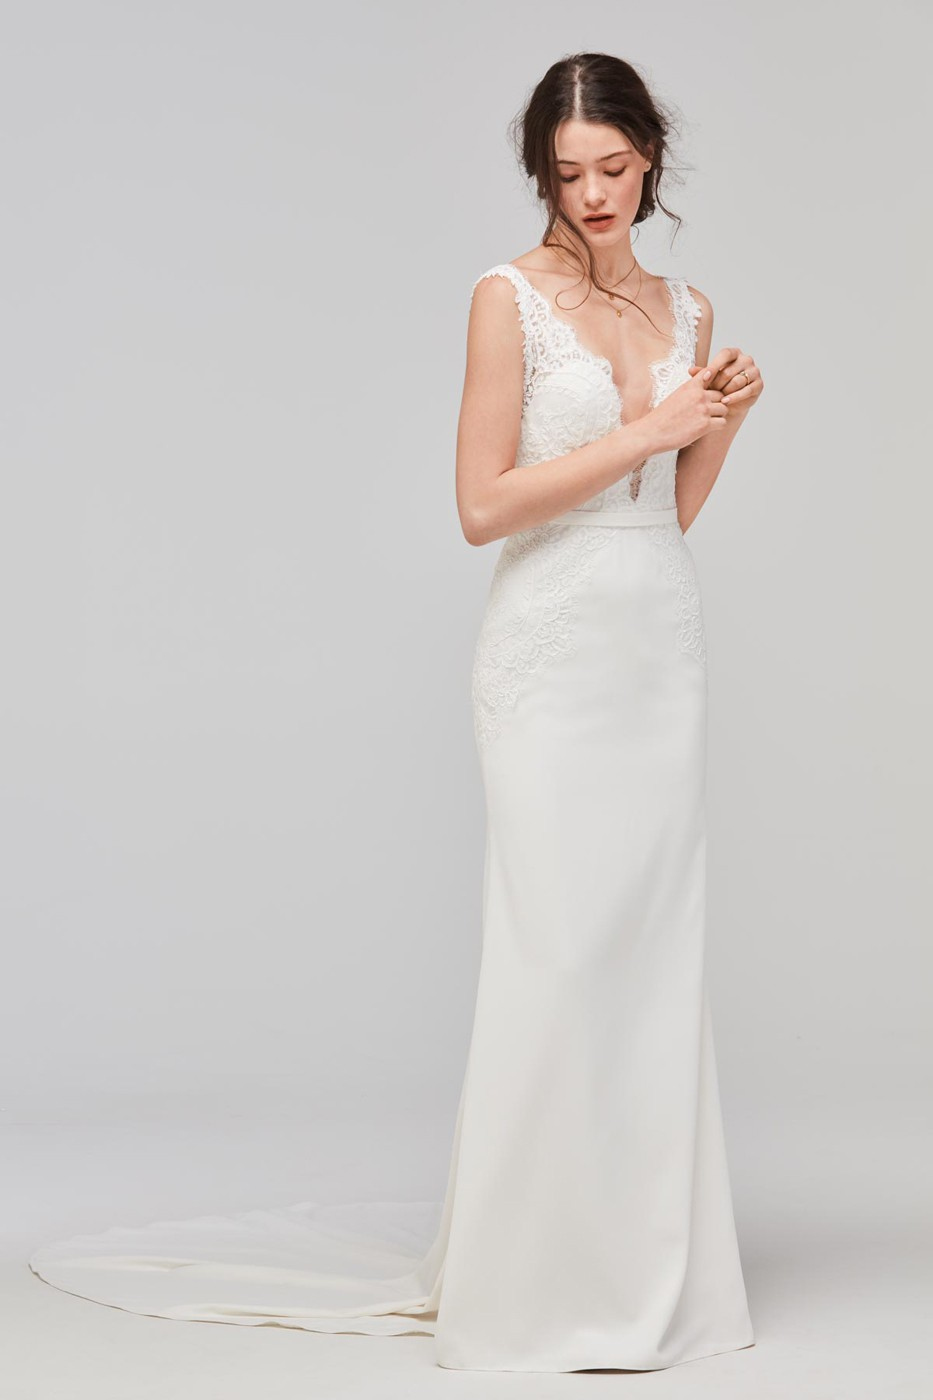 Willowby 59420M Lief Sheath Silhouette Wedding Dress | MadameBridal.com